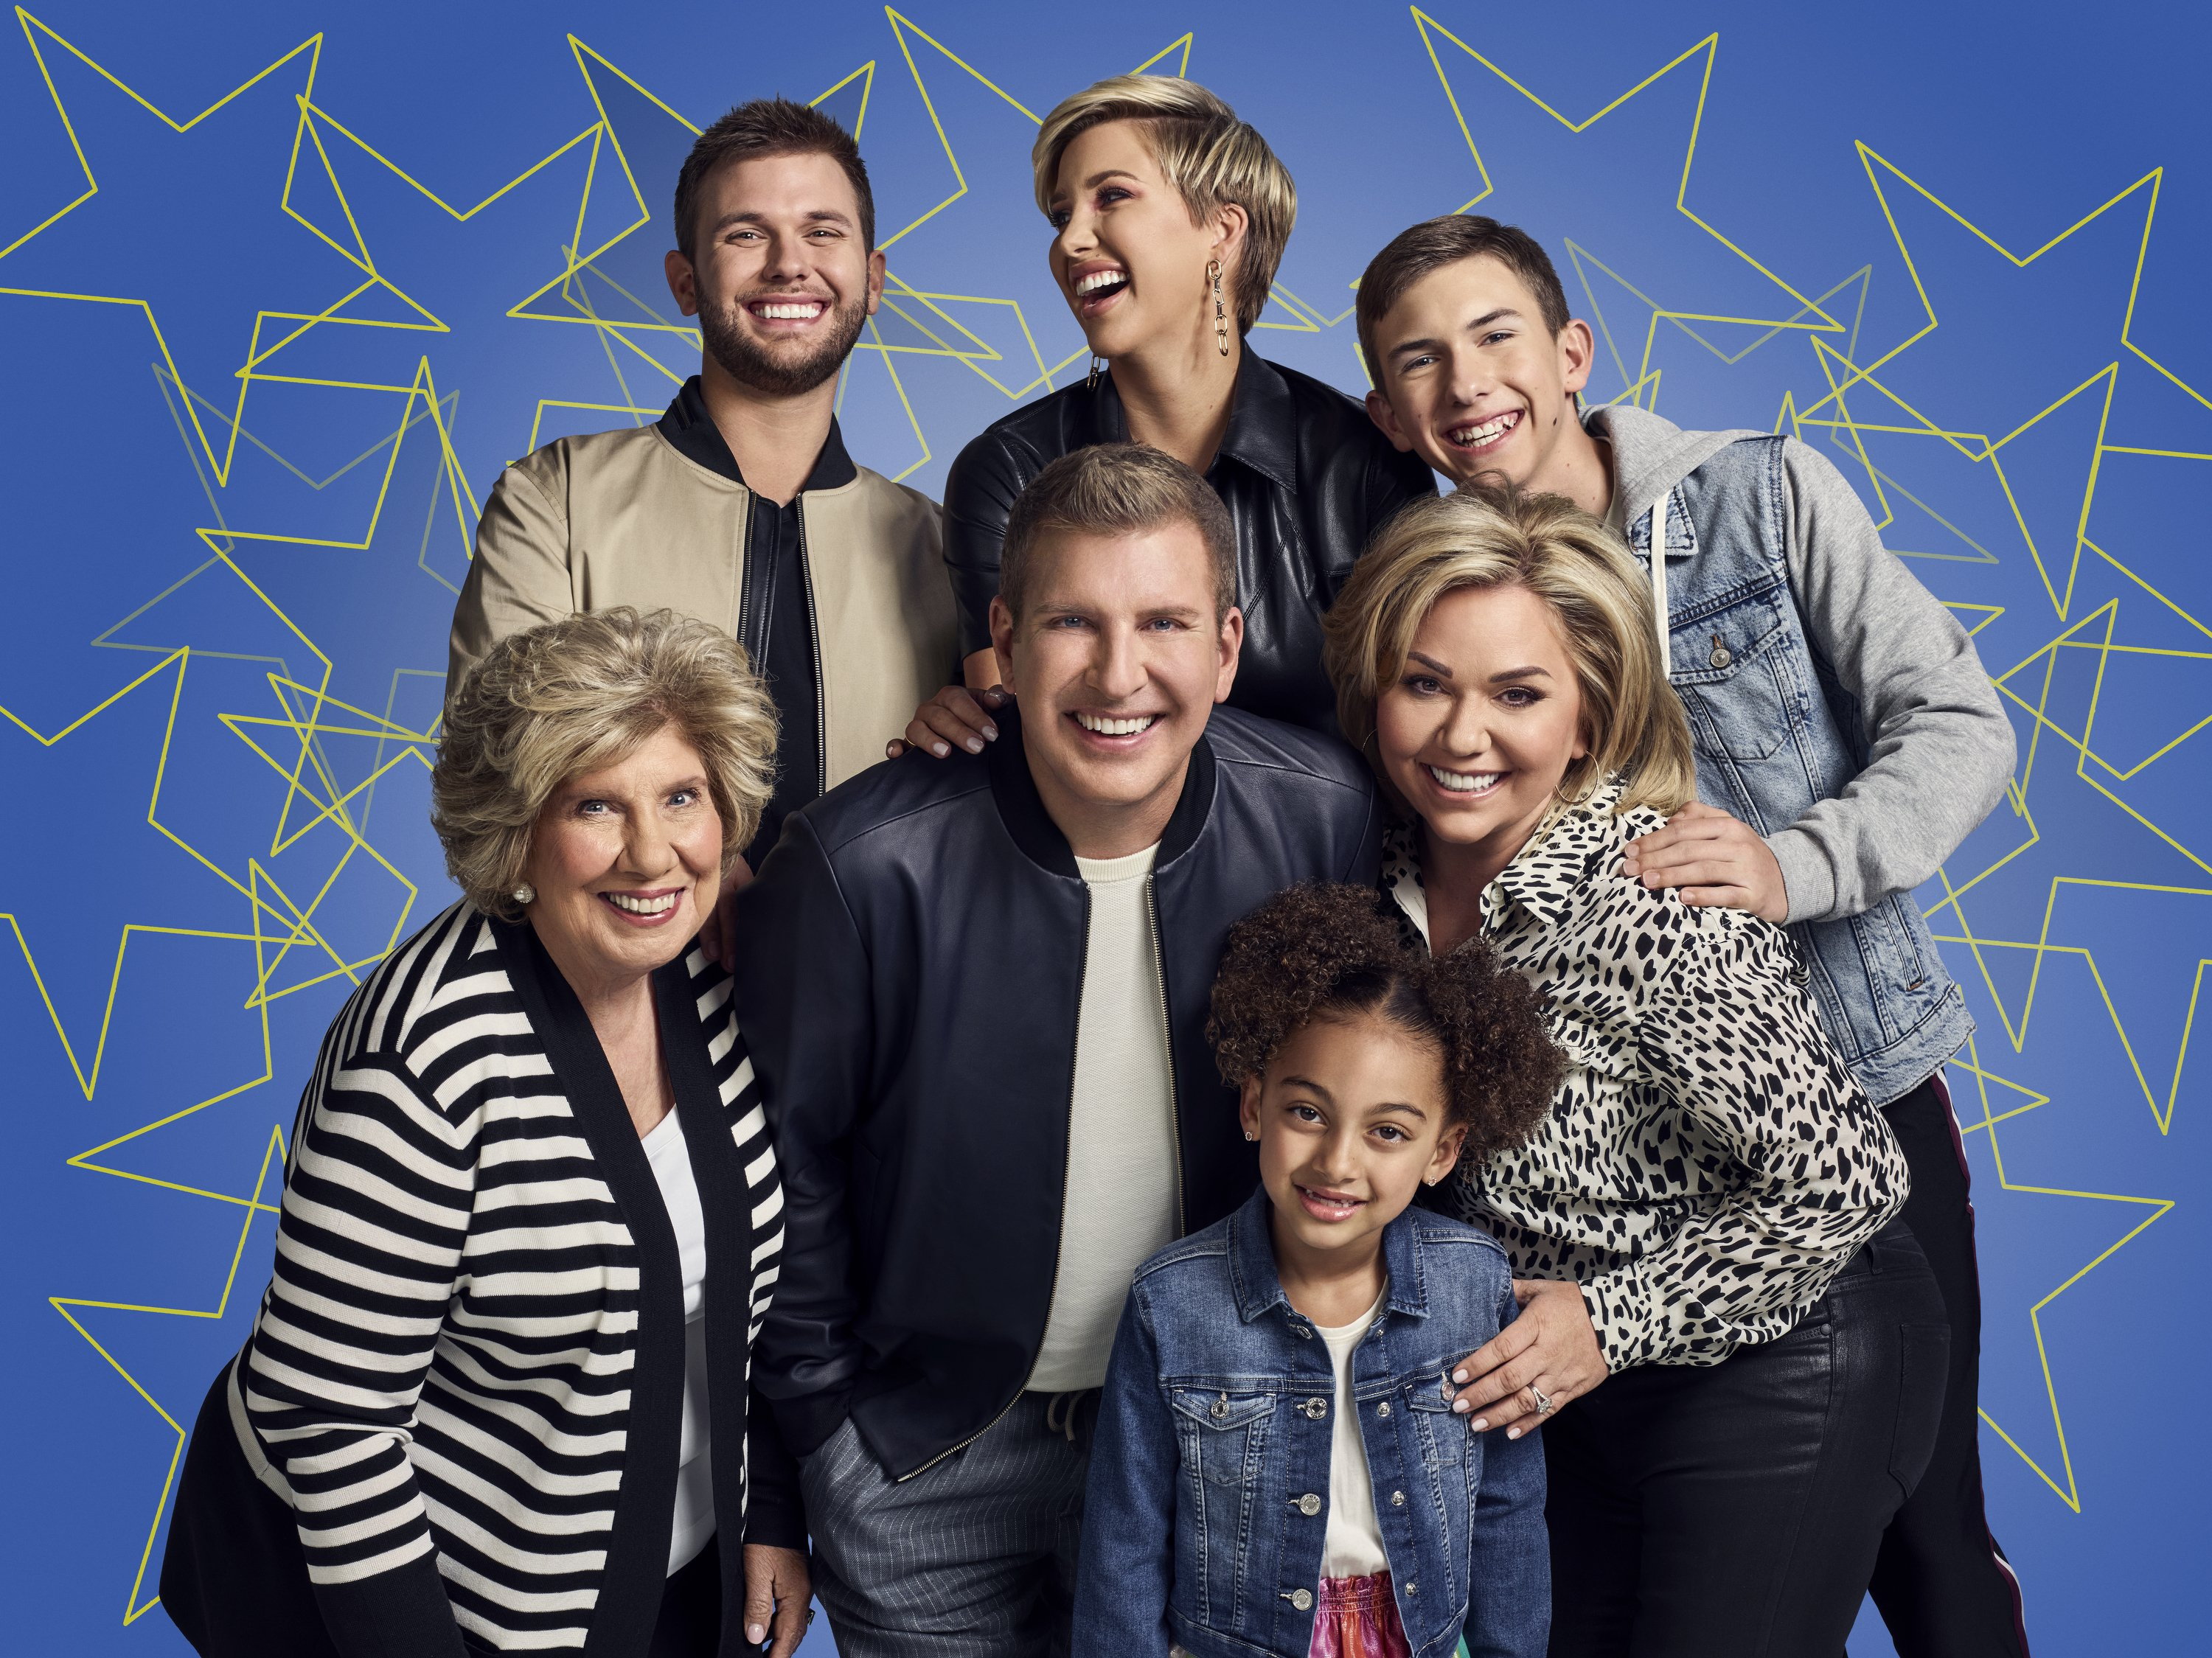 """Faye Chrisley, Chase Chrisley, Todd Chrisley, Savannah Chrisley, Chloe Chrisley, Julie Chrisley, Grayson Chrisley  on the """"Chrisley Knows Best"""" cover 